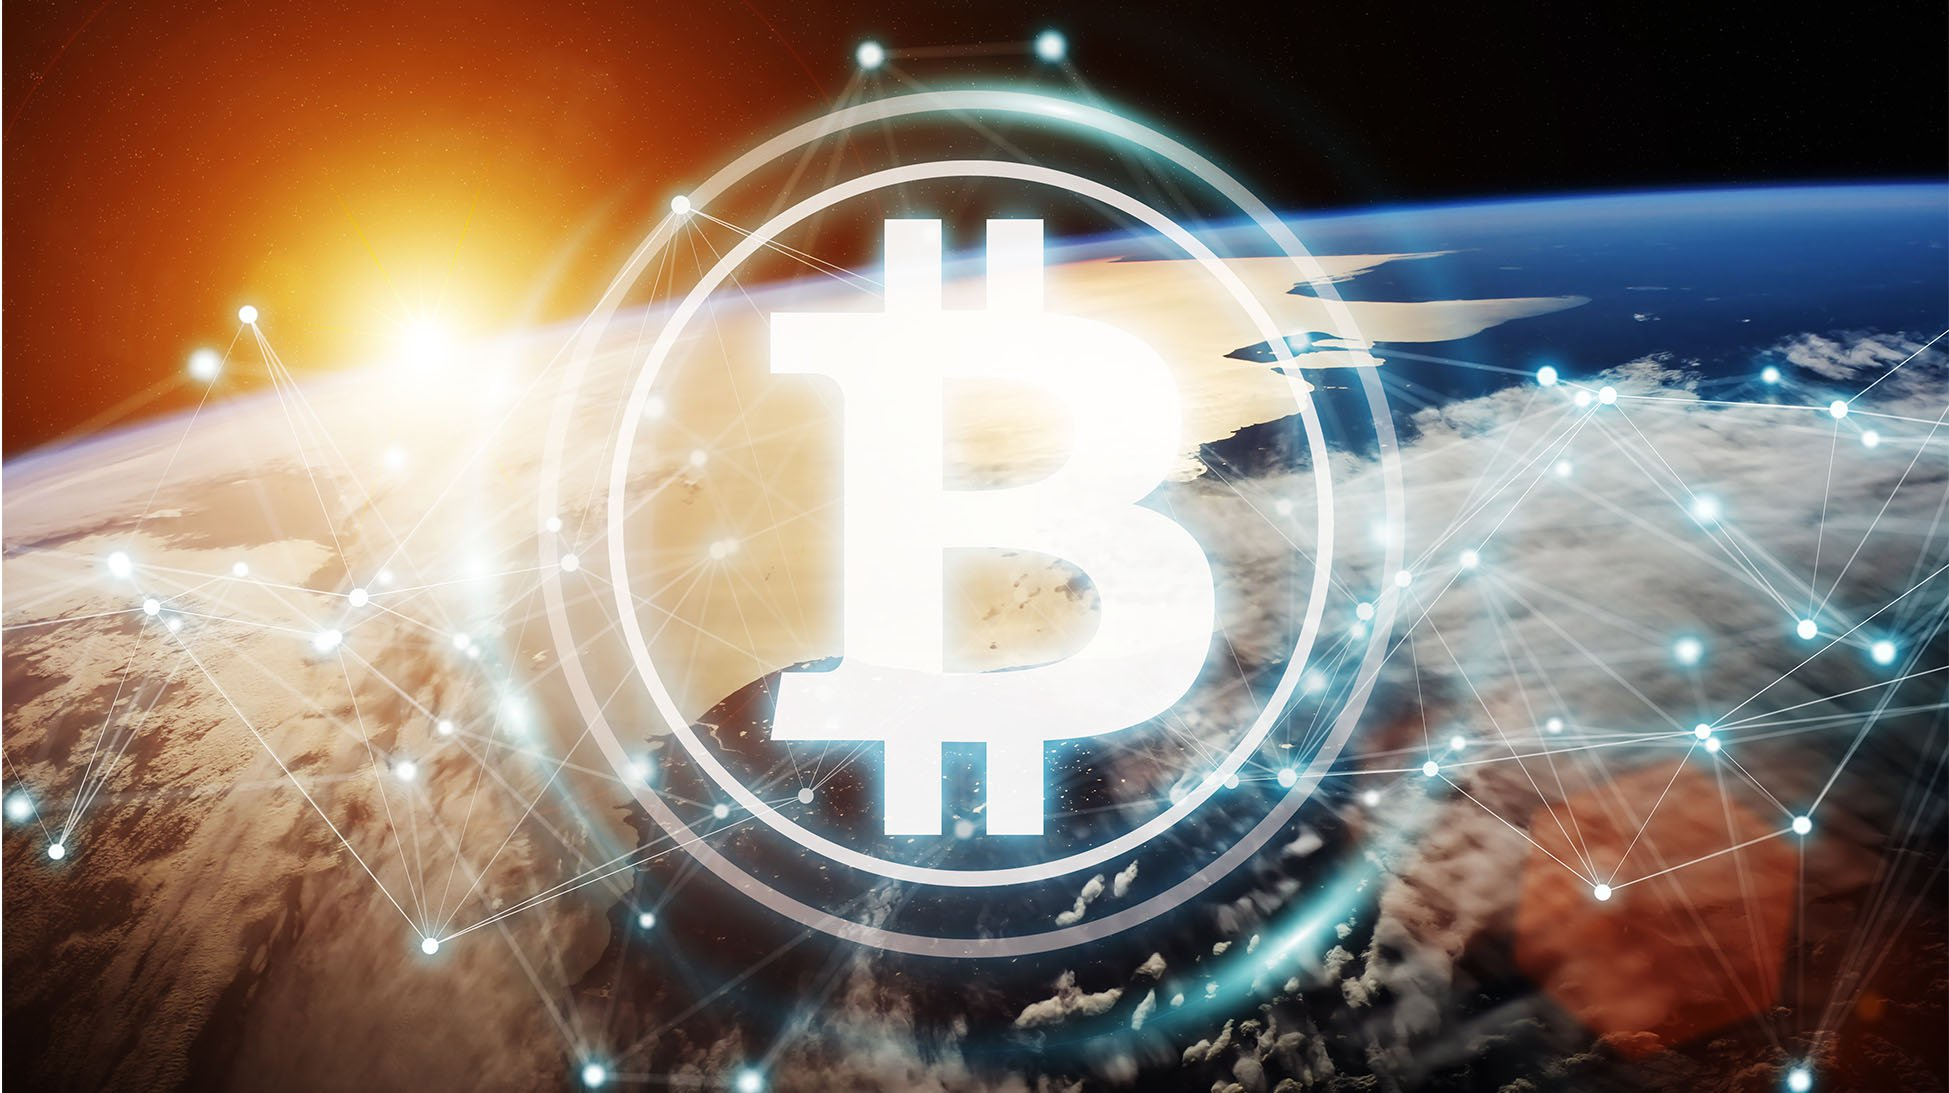 Bitcoin Futures Are Here: The Story So Far